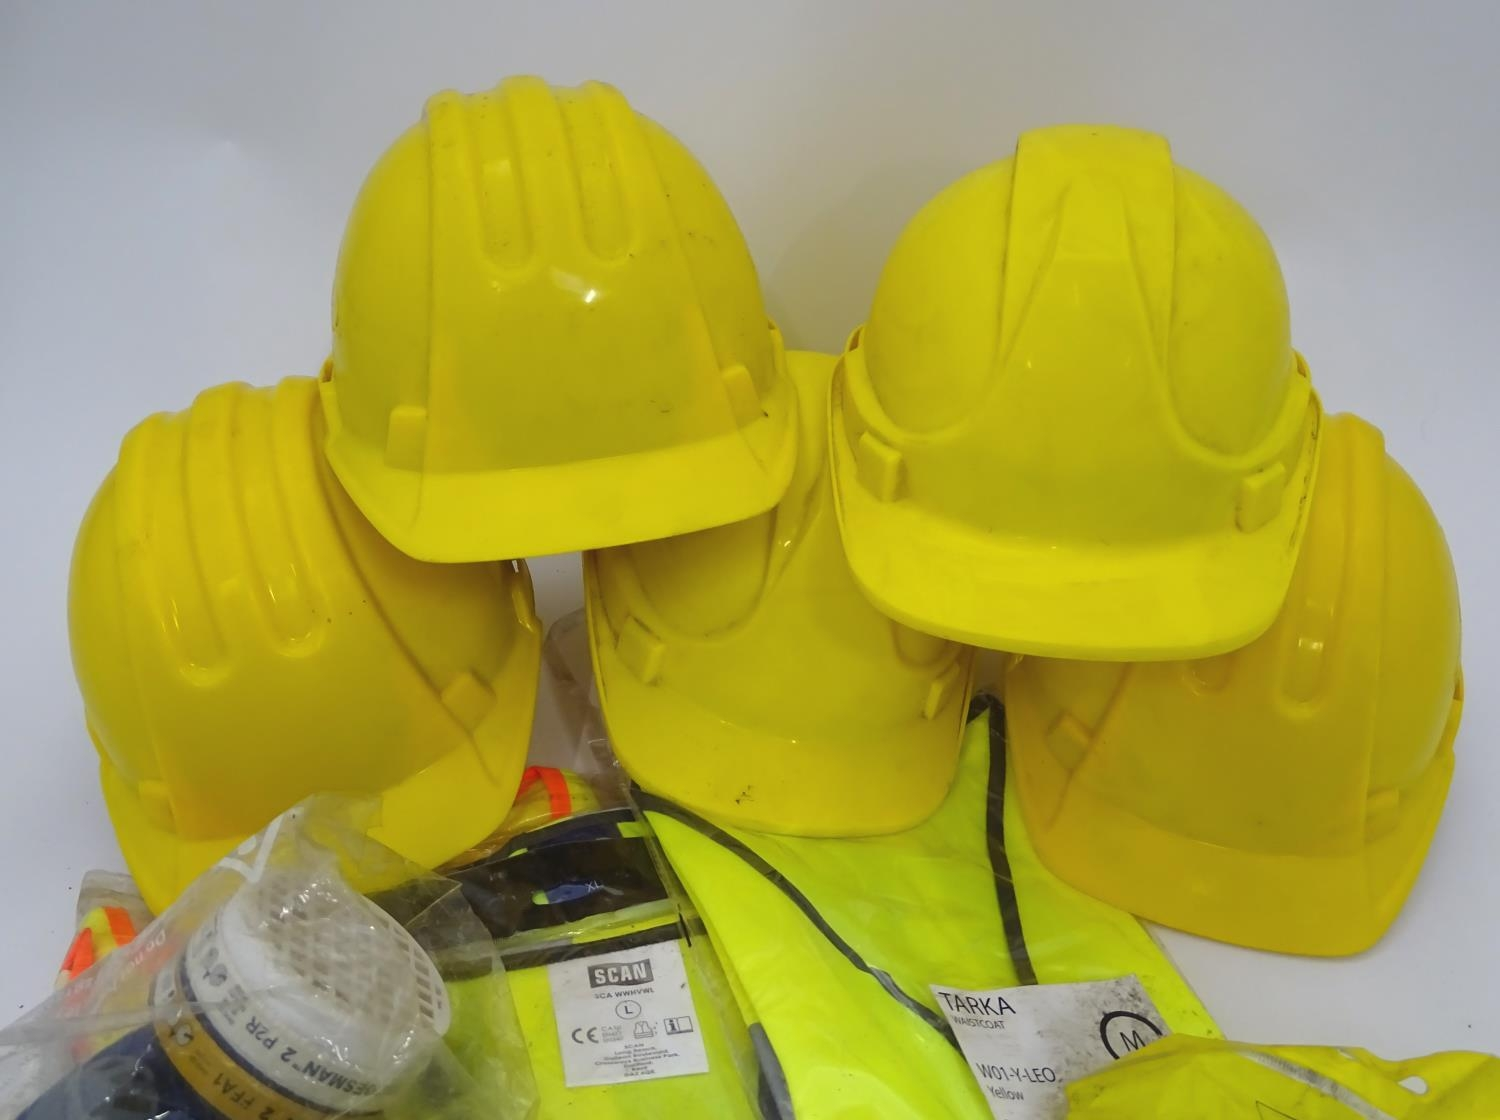 A quantity of health and safety equipment to include hard hats, safety glasses, hi vis vests etc. - Image 3 of 6